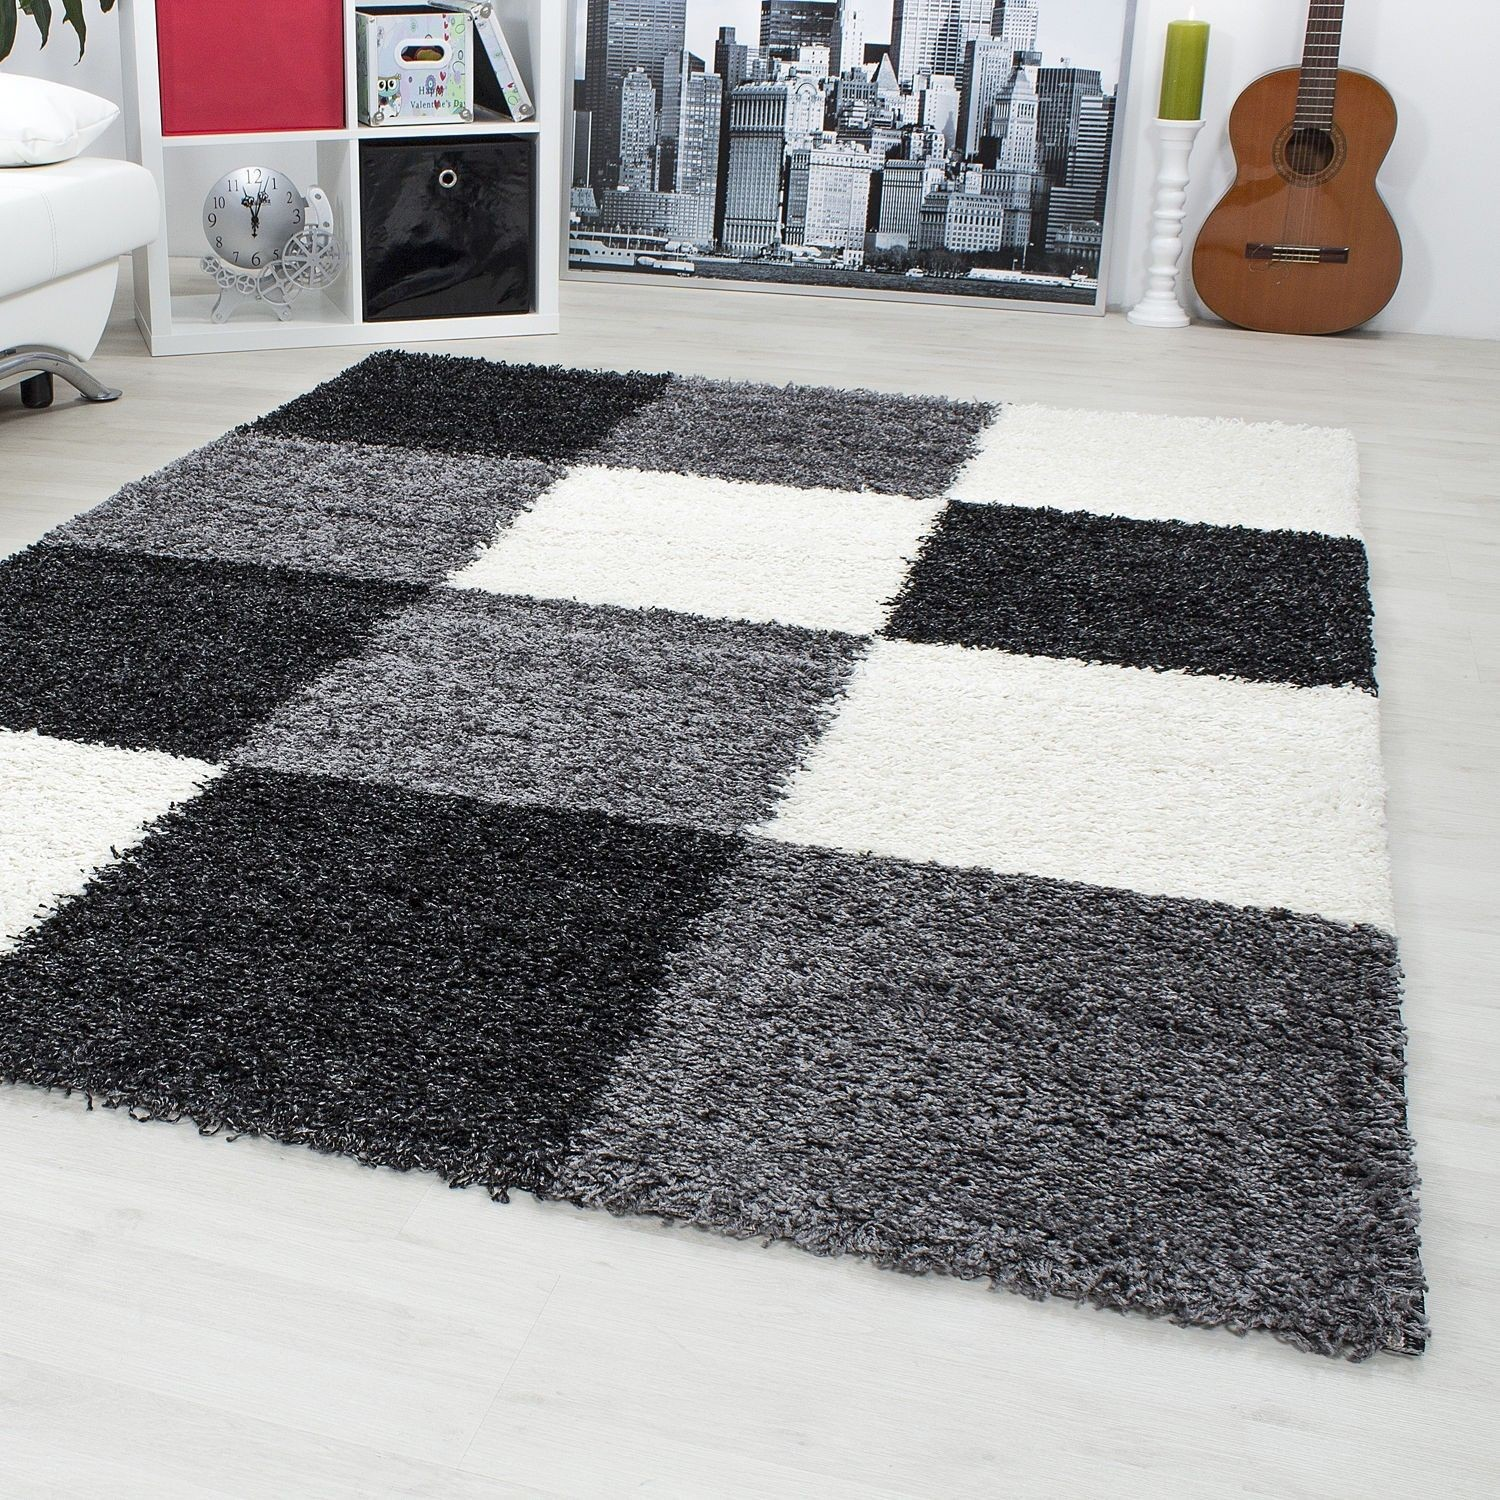 tapis noir o trouver un tapis noir et blanc joli place tapis shaggy longues m ches noir blanc. Black Bedroom Furniture Sets. Home Design Ideas